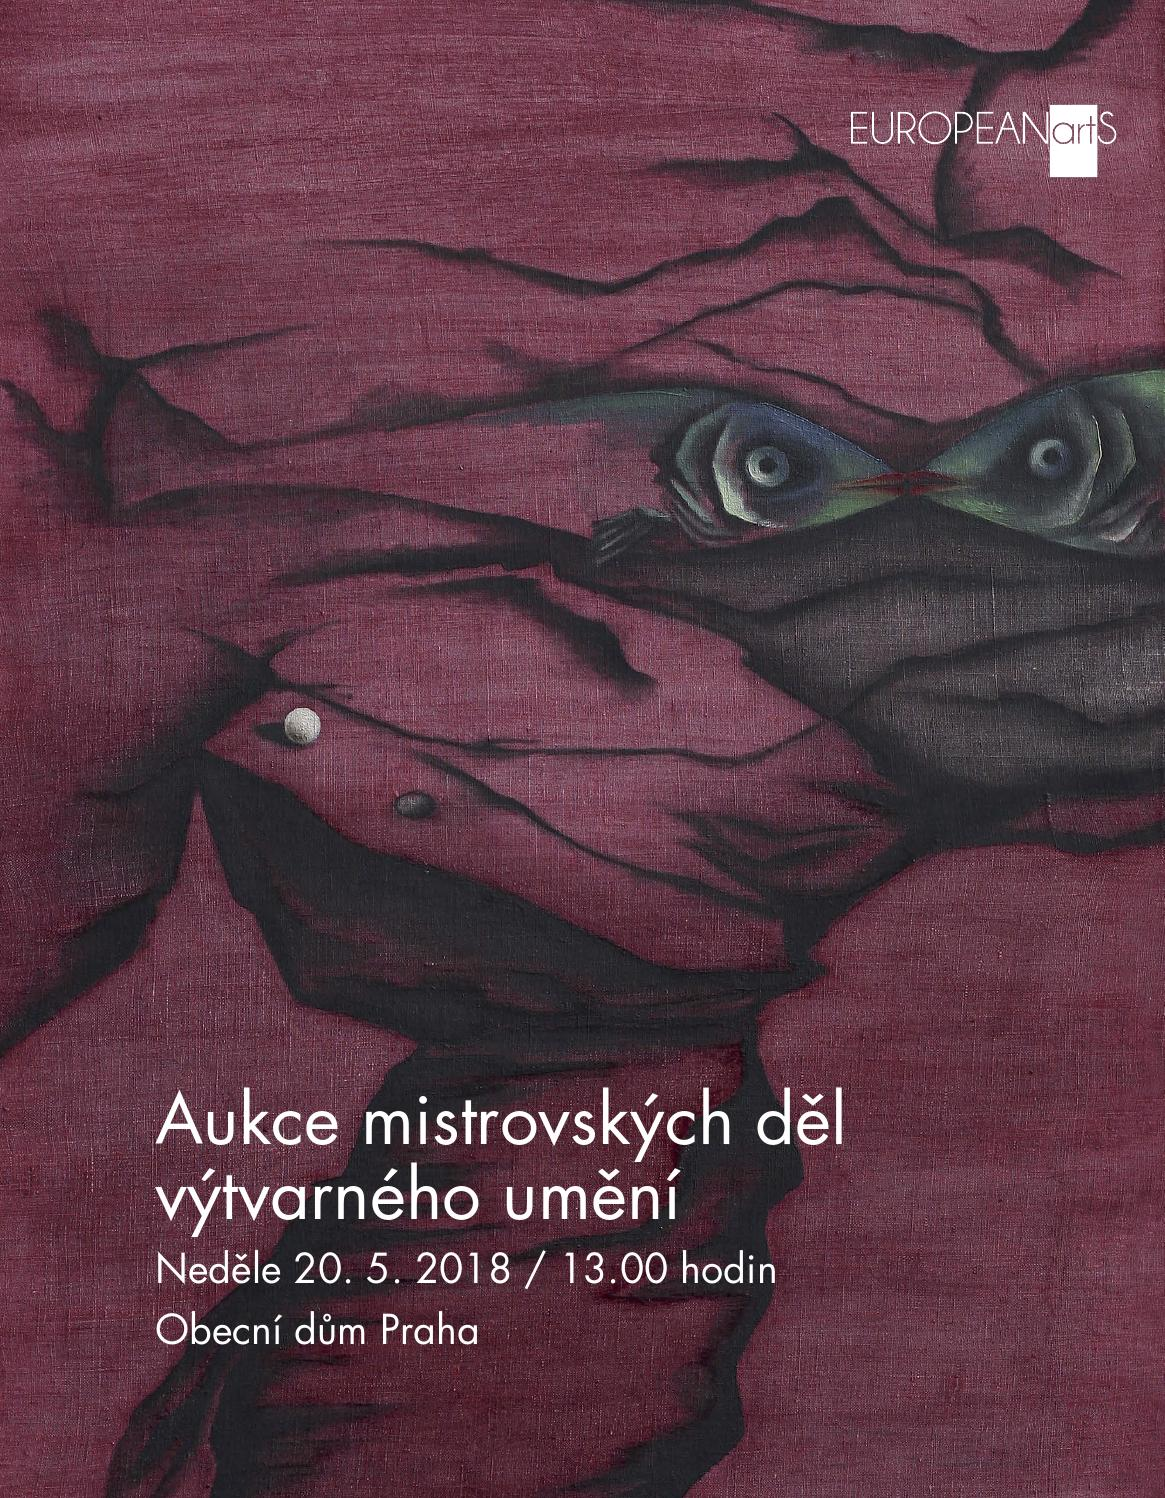 Aukcni katalog 2 2018 by EUROPEAN ARTS - AUCTION HOUSE I GALLERY - issuu f2ebb4b07a